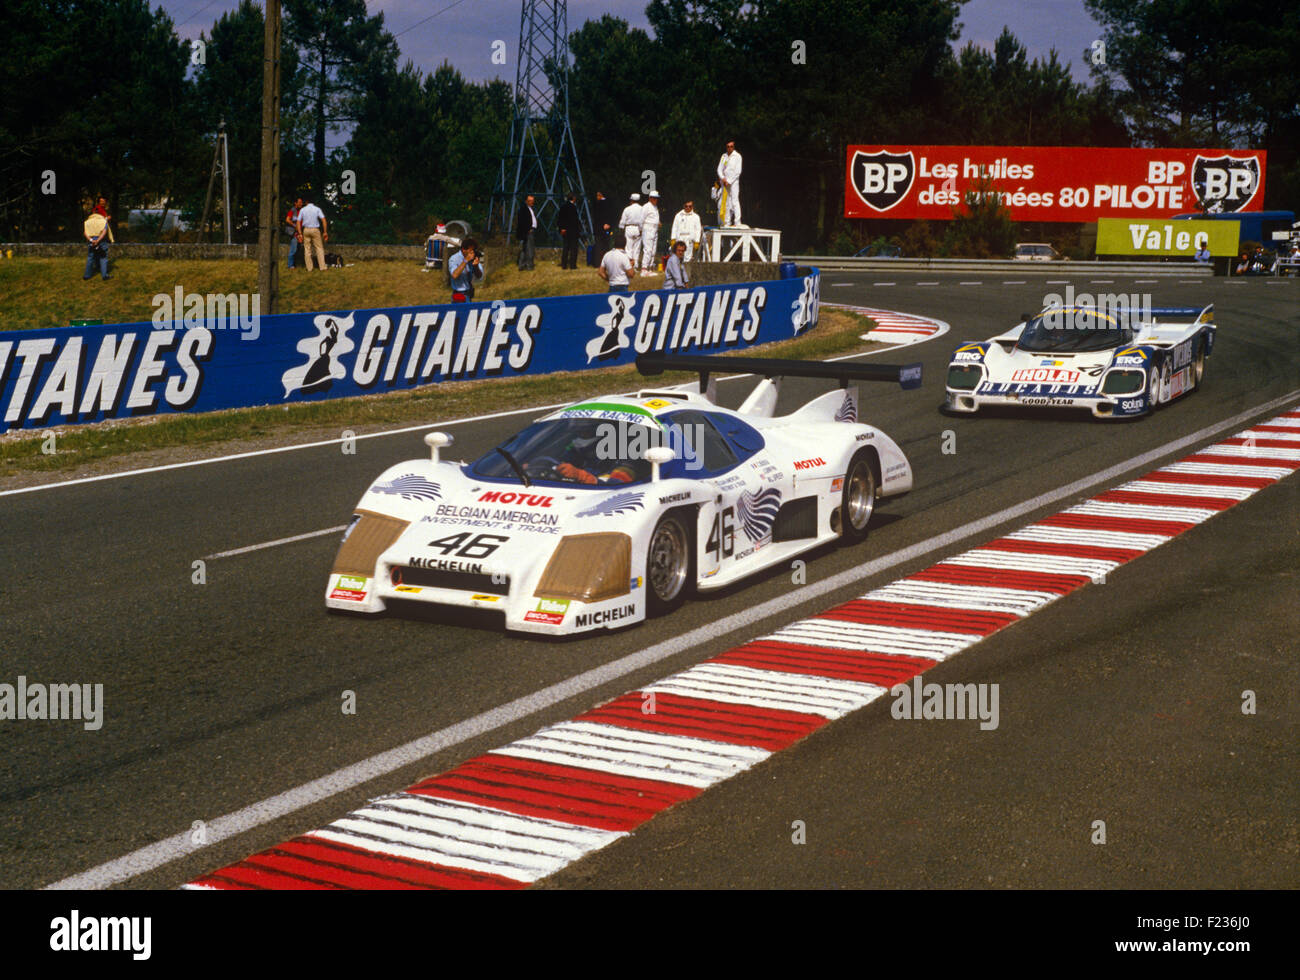 46 Christian Bussi, Jack Griffin and M. L. Speer Rondeau M482 at Mulsanne Corner, Le Mans 16 June 1985 - Stock Image